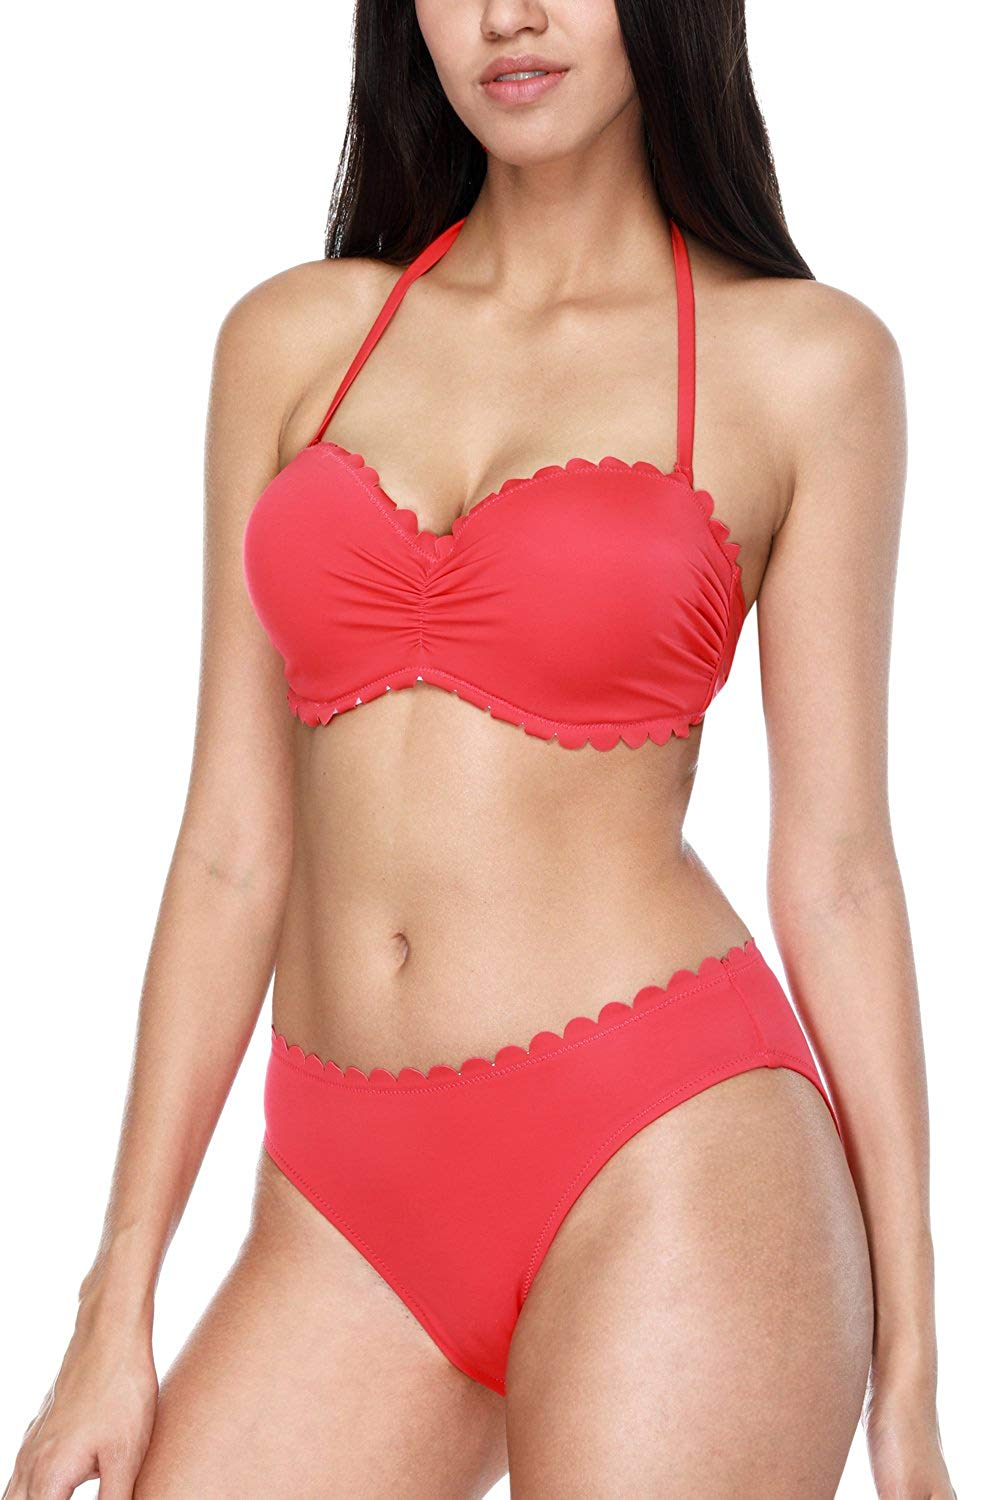 5126644c22fbf Get Quotations · CharmLeaks Womens Rerto Two Piece Bikinis Halter Bikini  Swimsuit Sets with Underwire